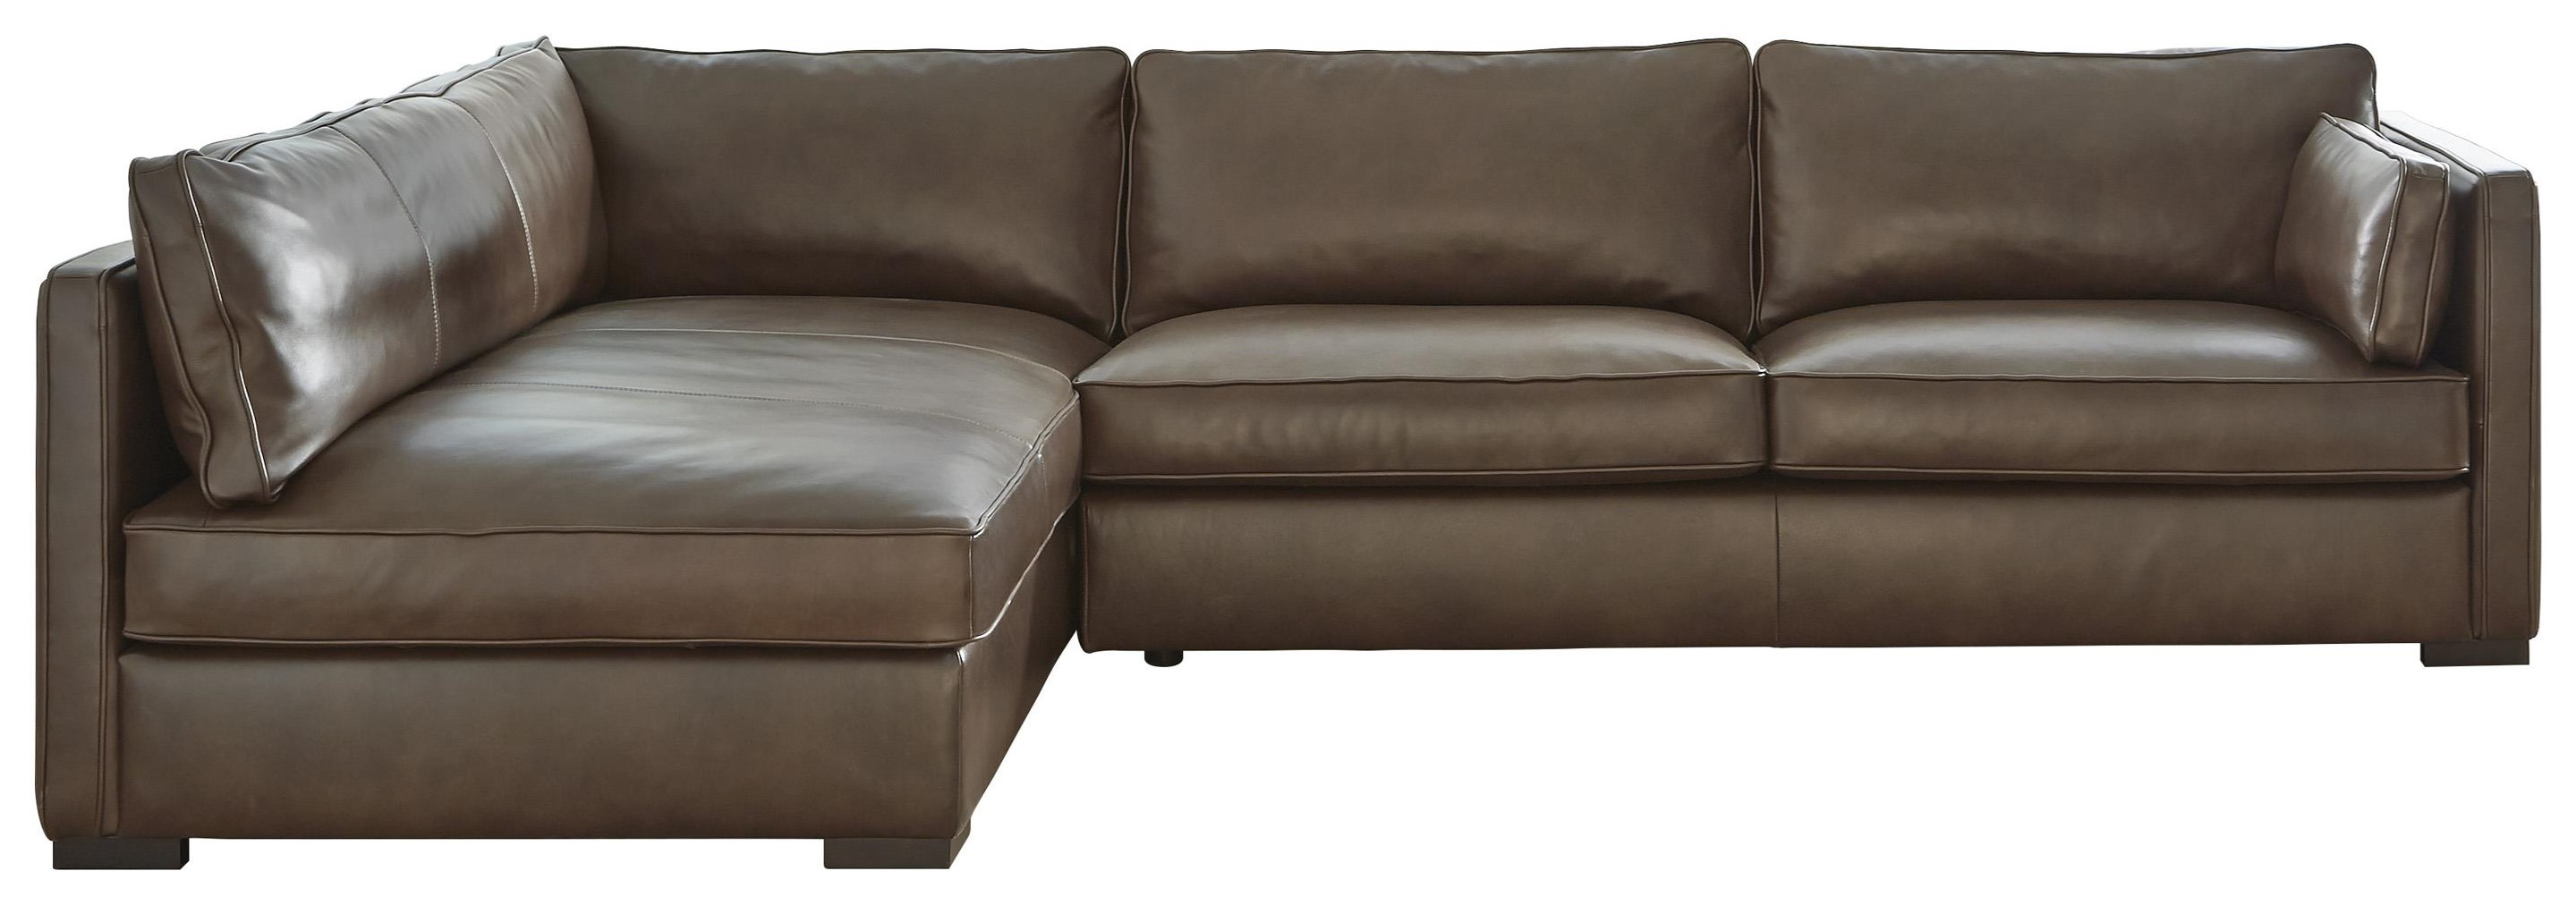 Kiessel 2 Piece Sectional Sofa Chaise by Millennium at Sam Levitz Outlet